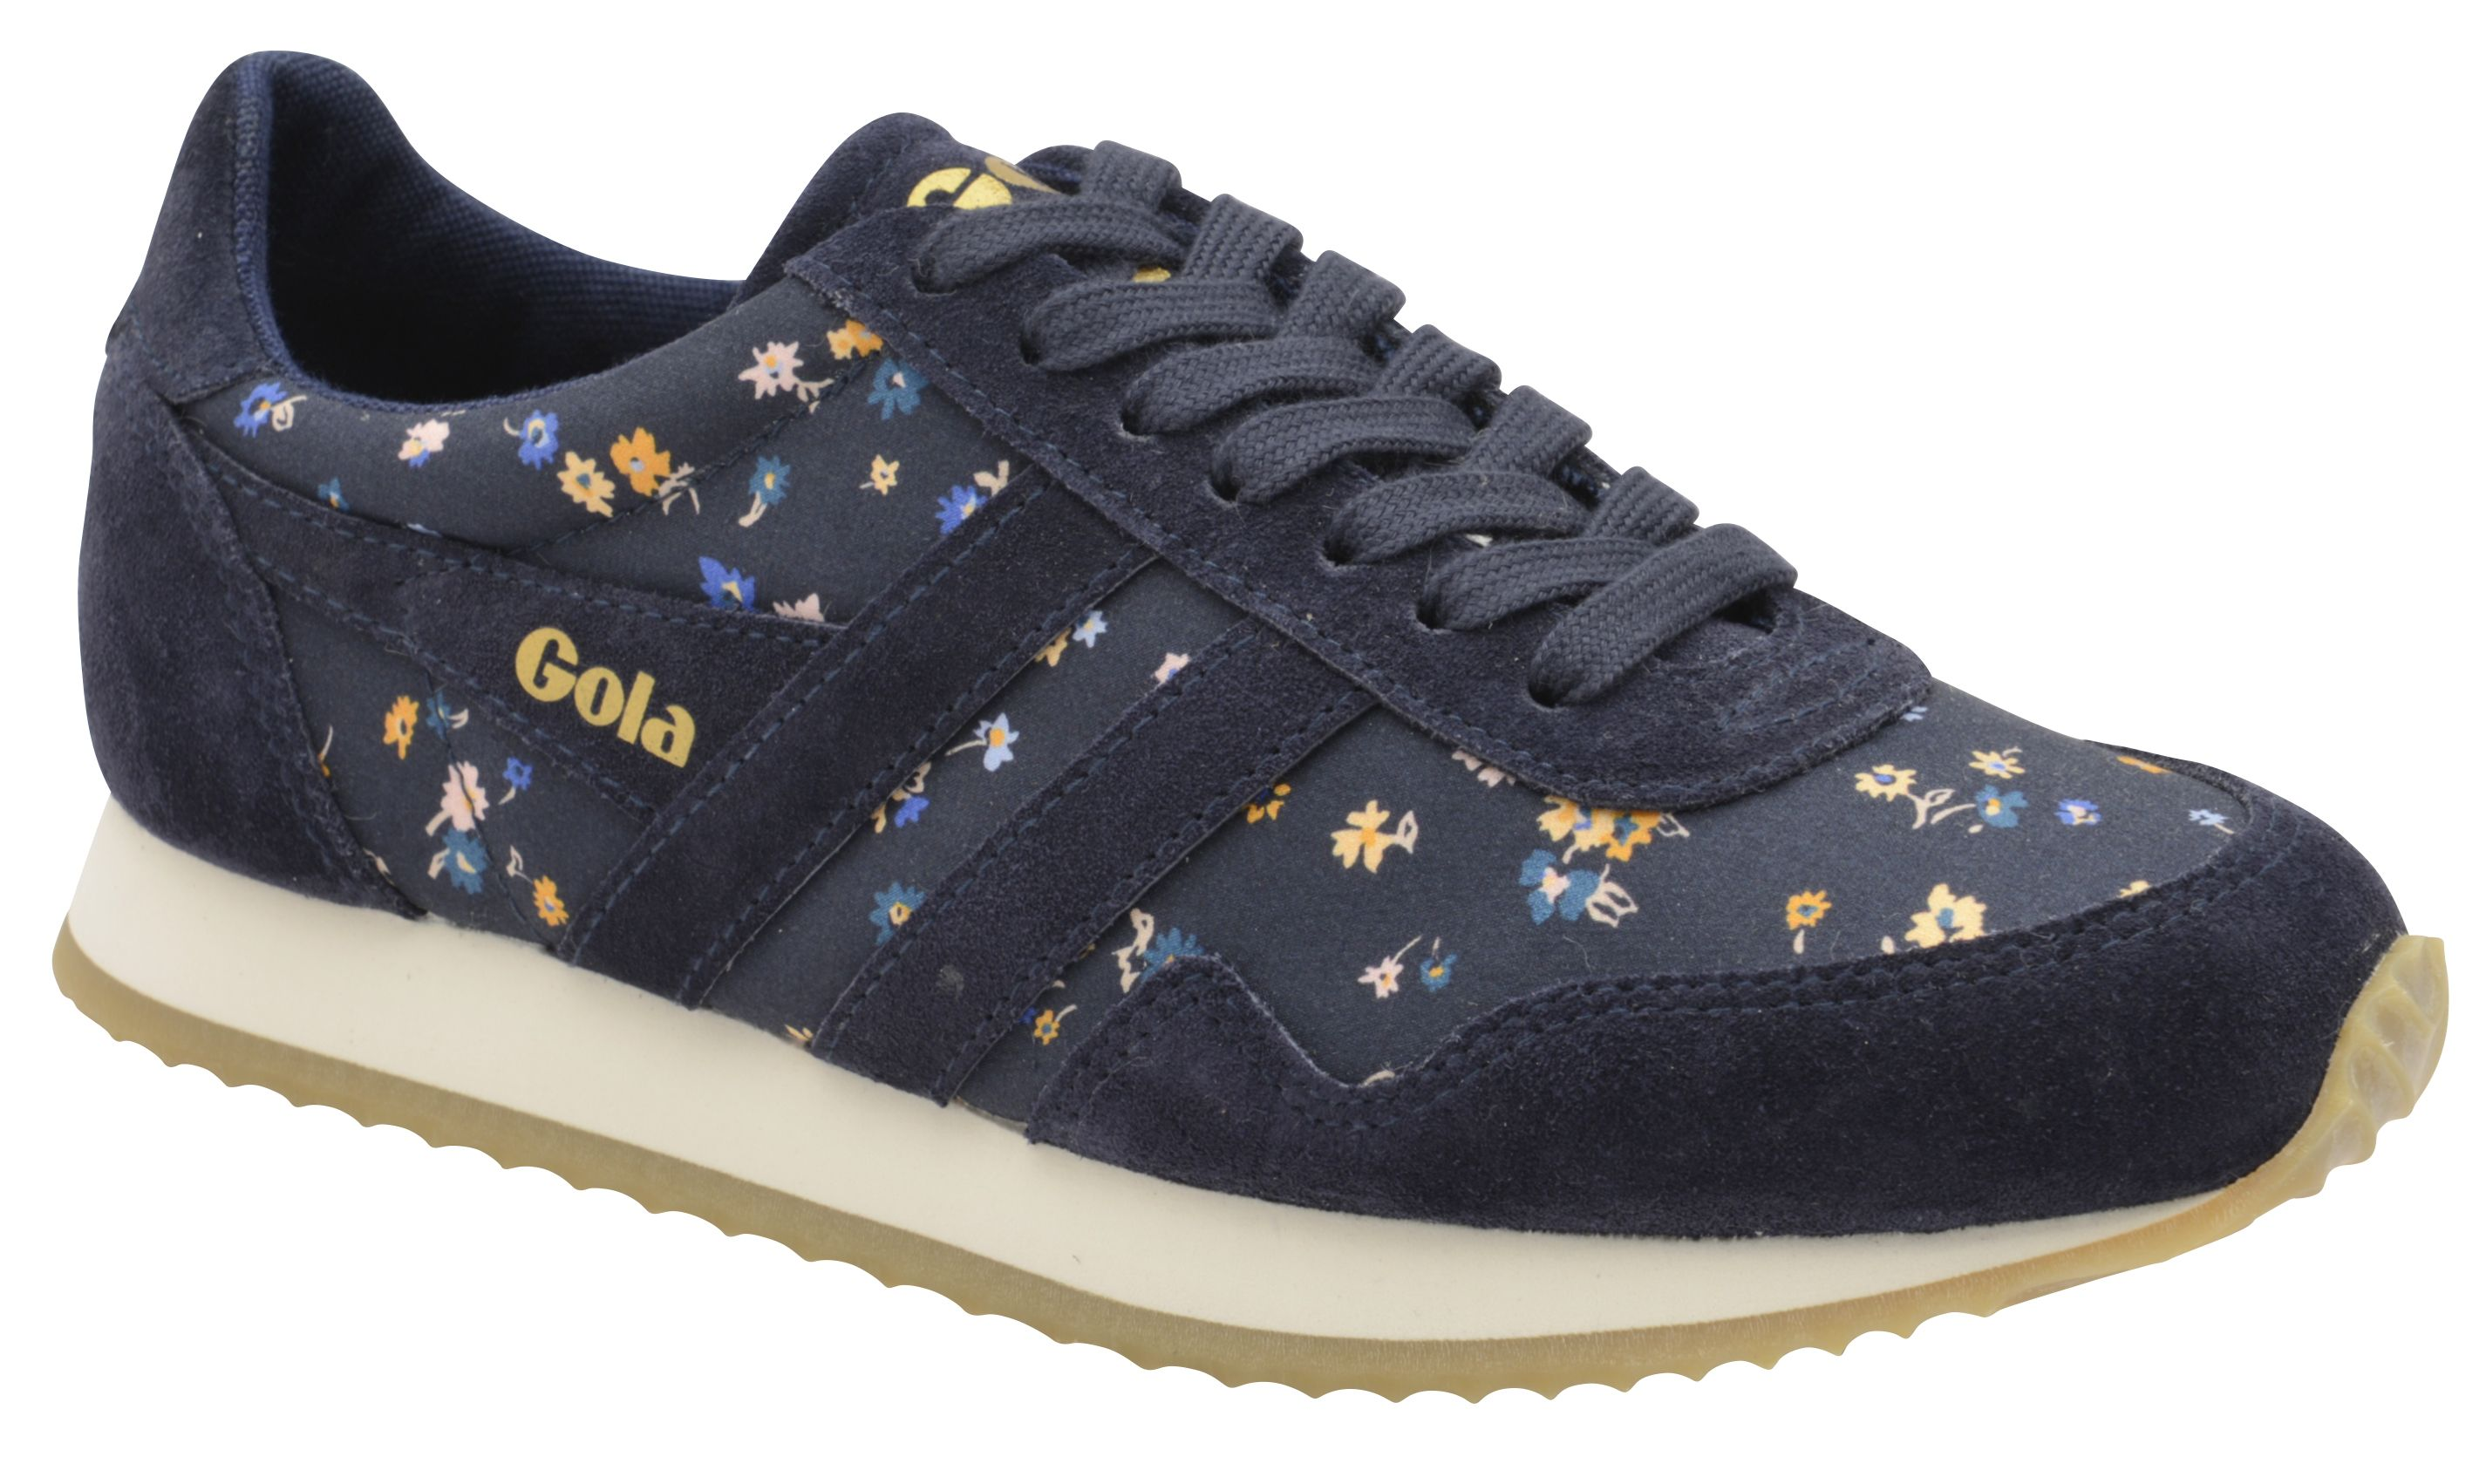 Gola Women's Spirit Liberty ST Navy Trainers Cheap Sale Very Cheap uiG2pqW